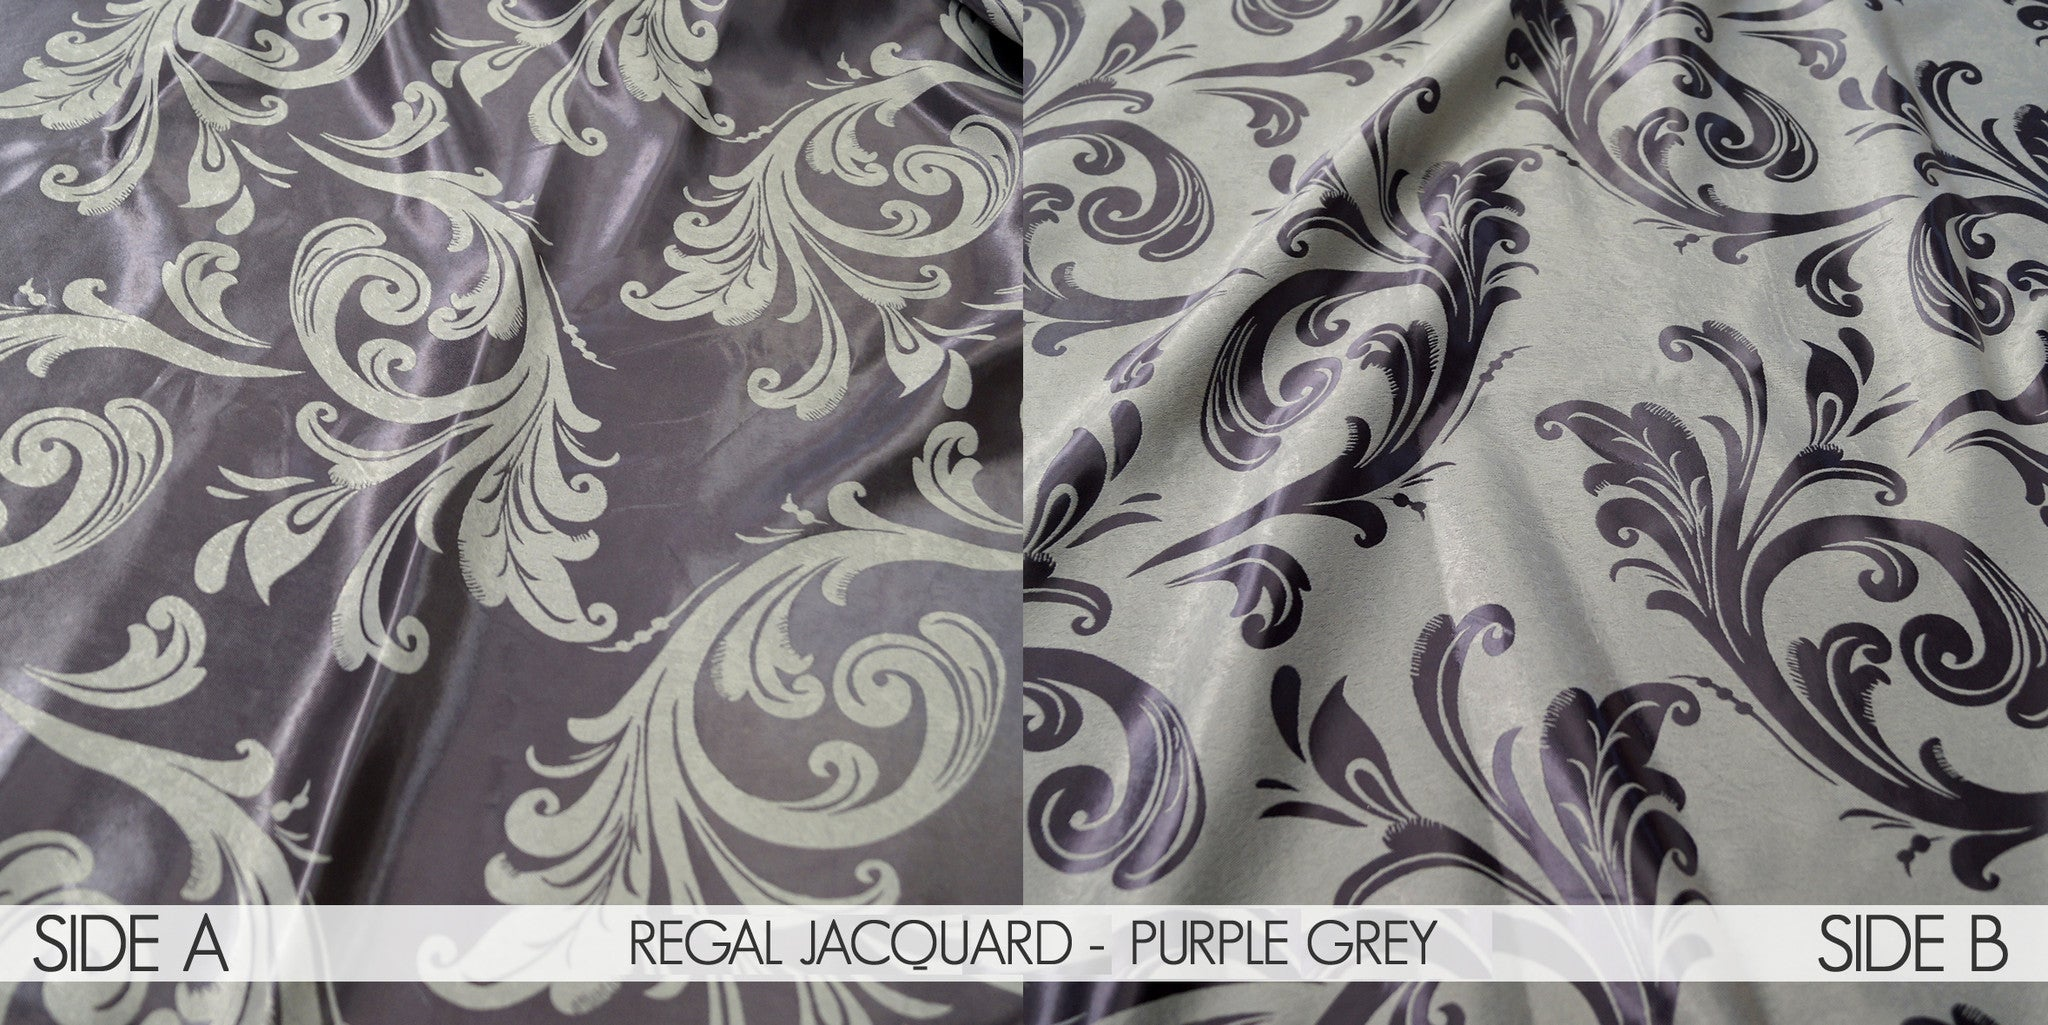 REGAL JACQUARD - PURPLE GREY